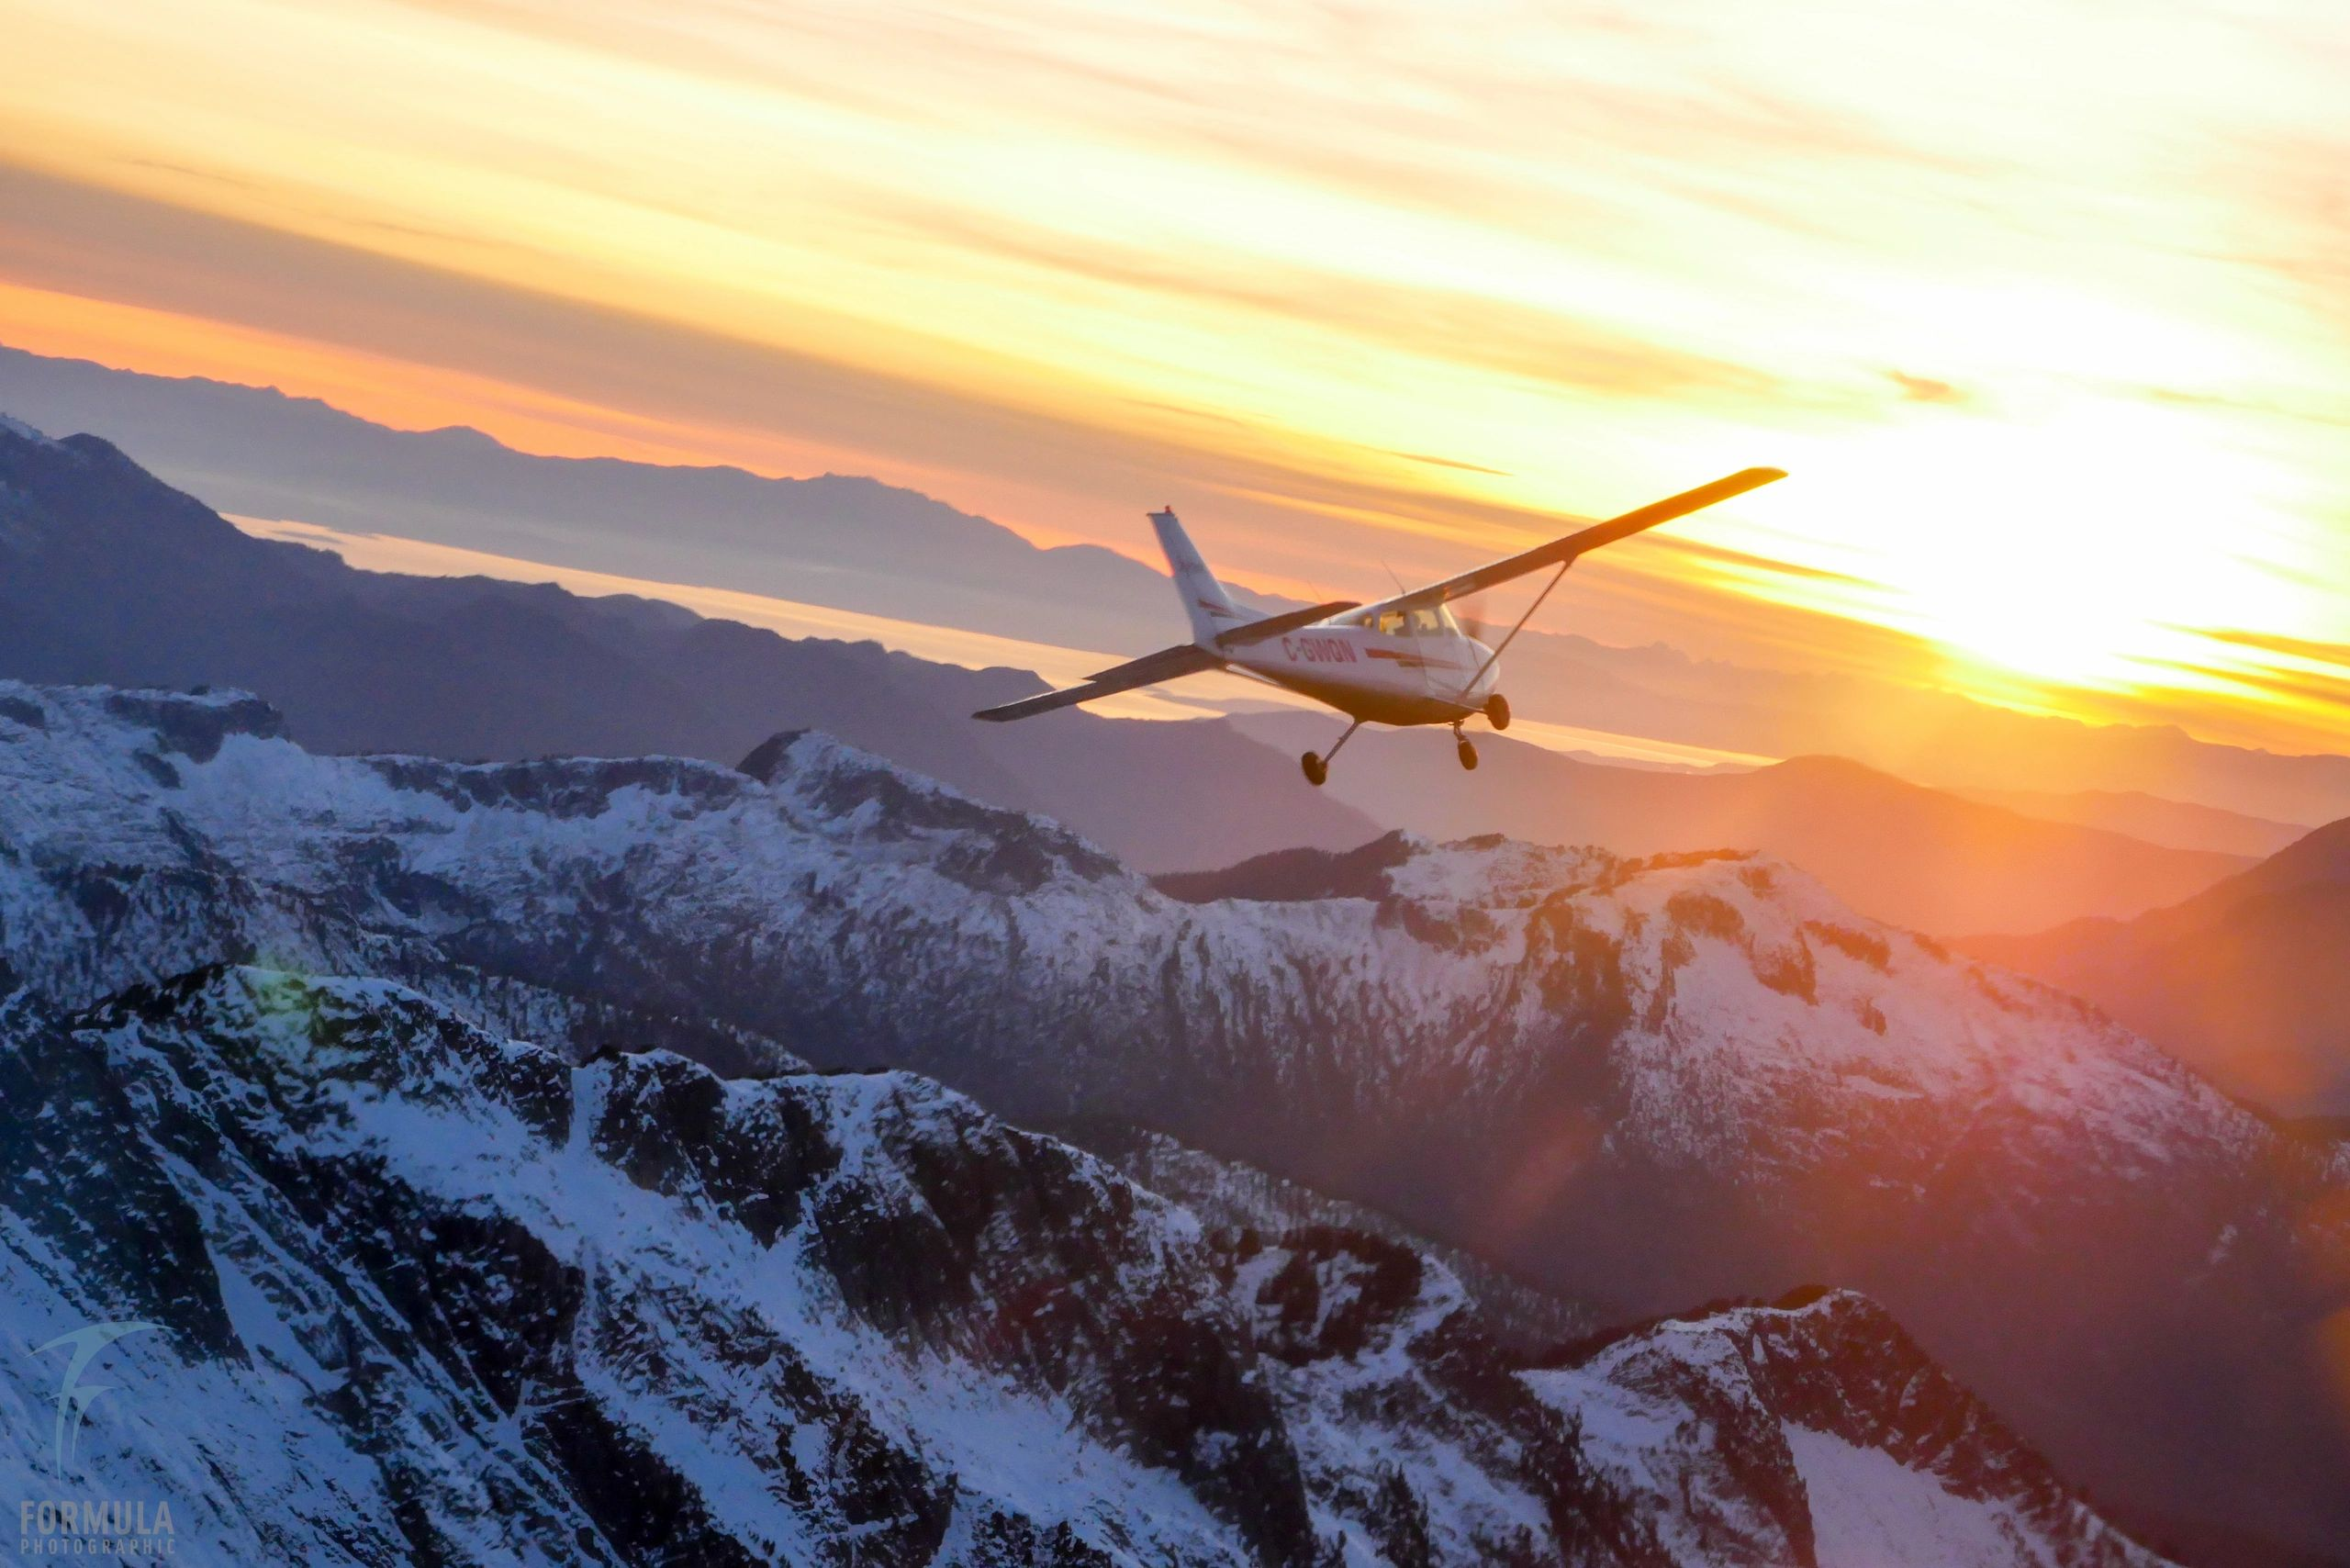 Cessna flies into the sunset over mountains of British Columbia.